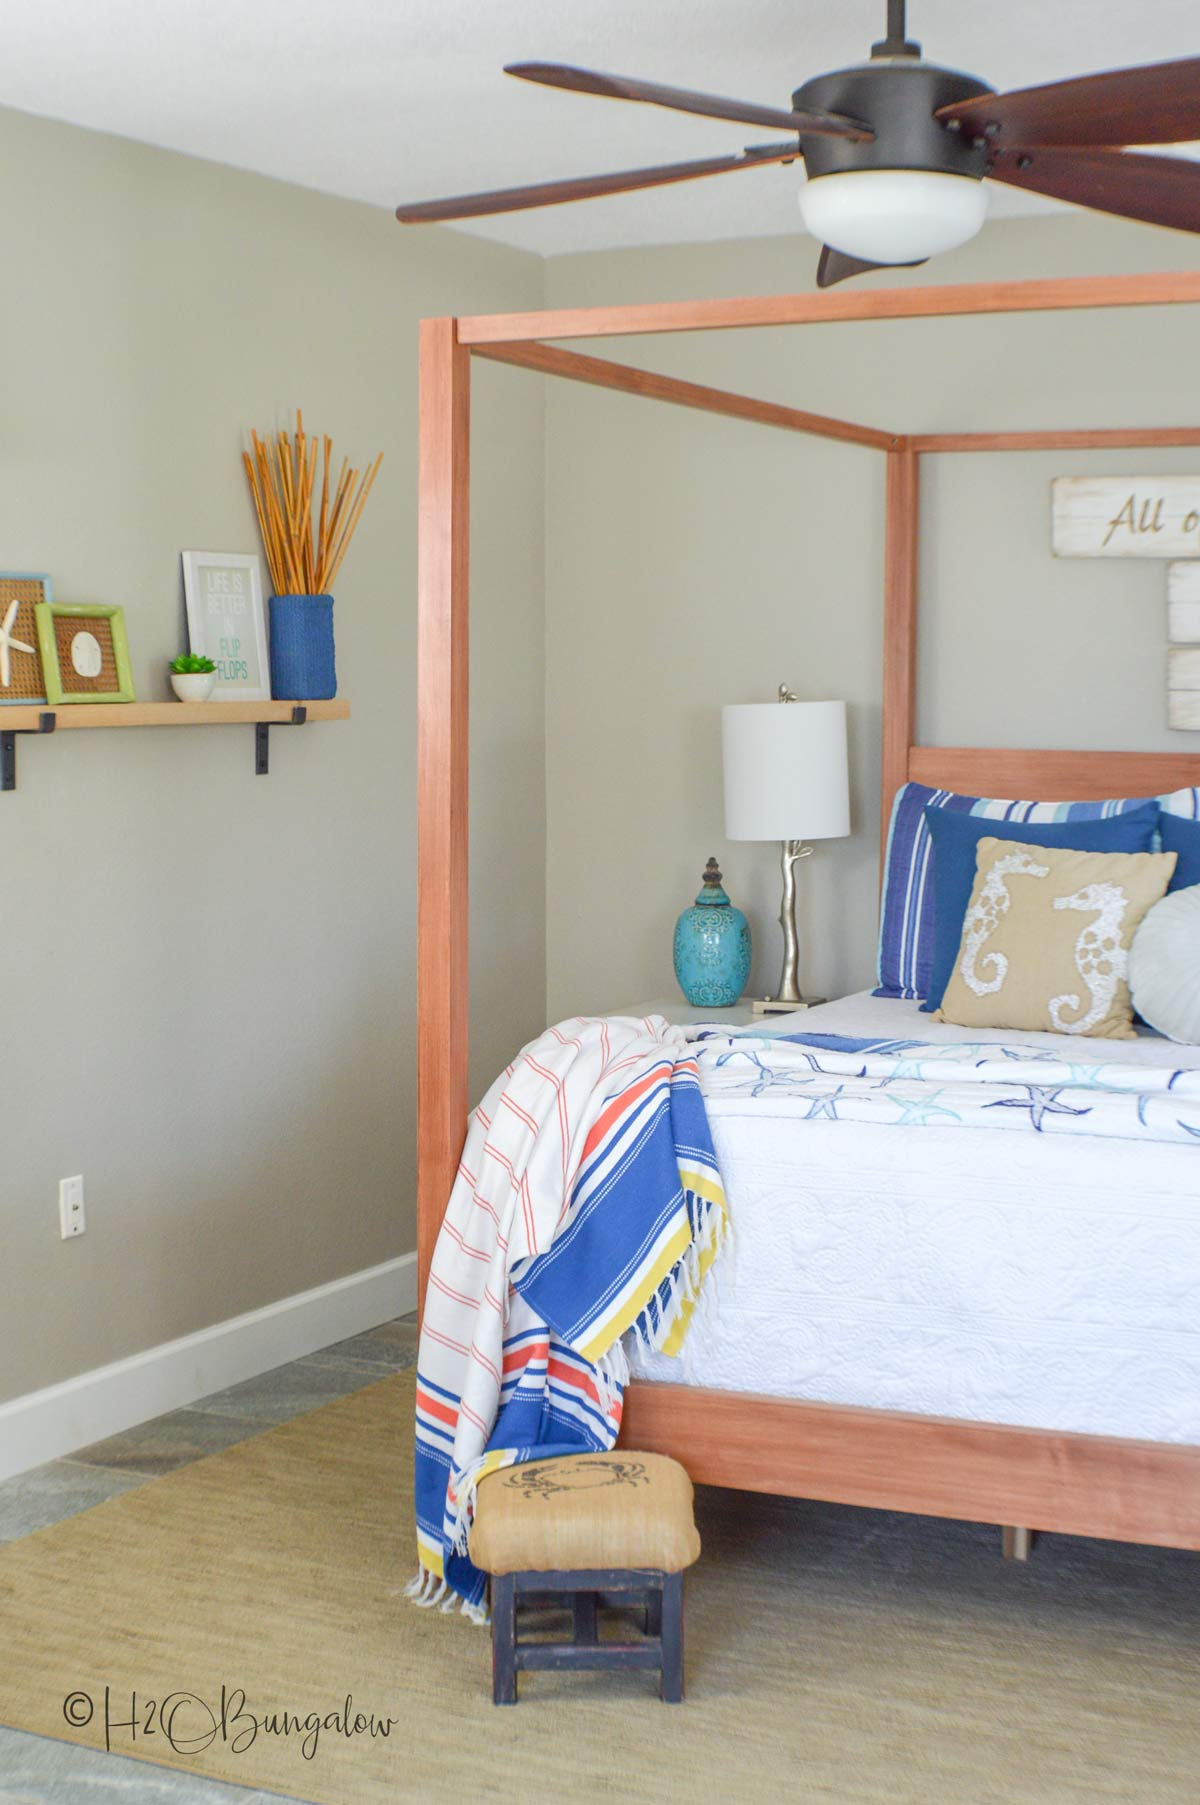 Finished bed from my DIY queen bed frame plans